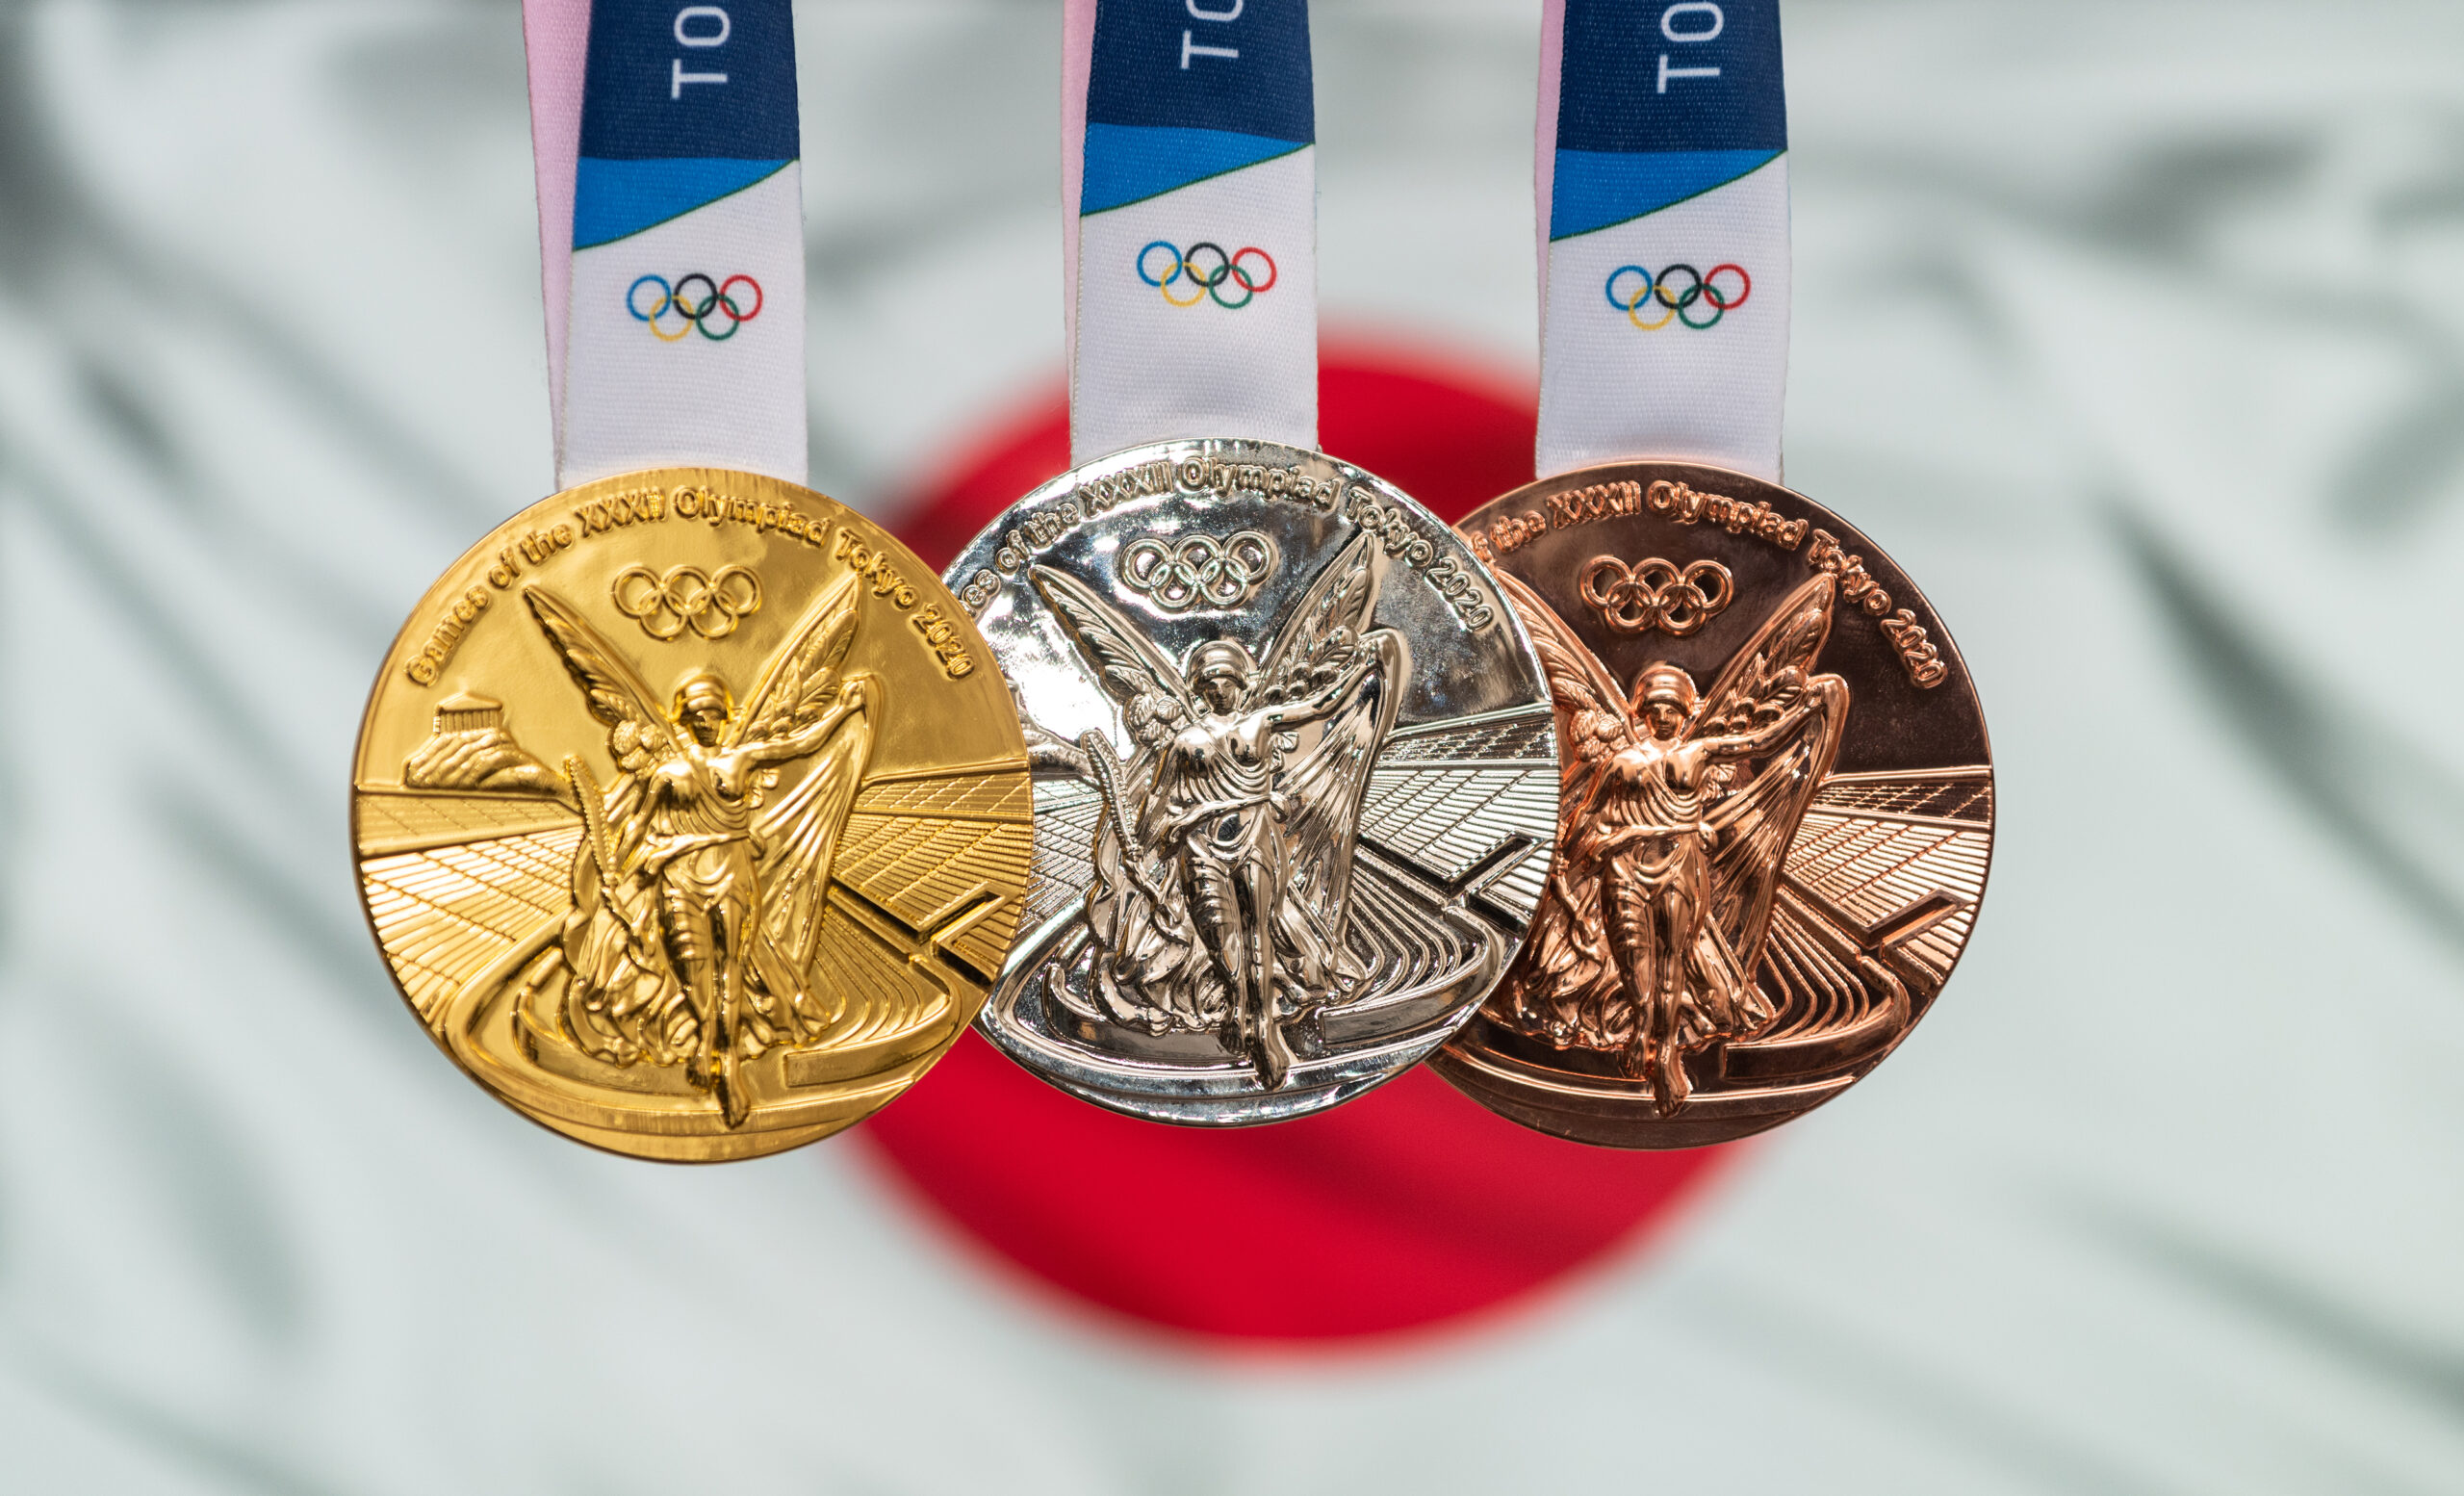 Out American athletes are bringing home 5 medals from the Paralympics